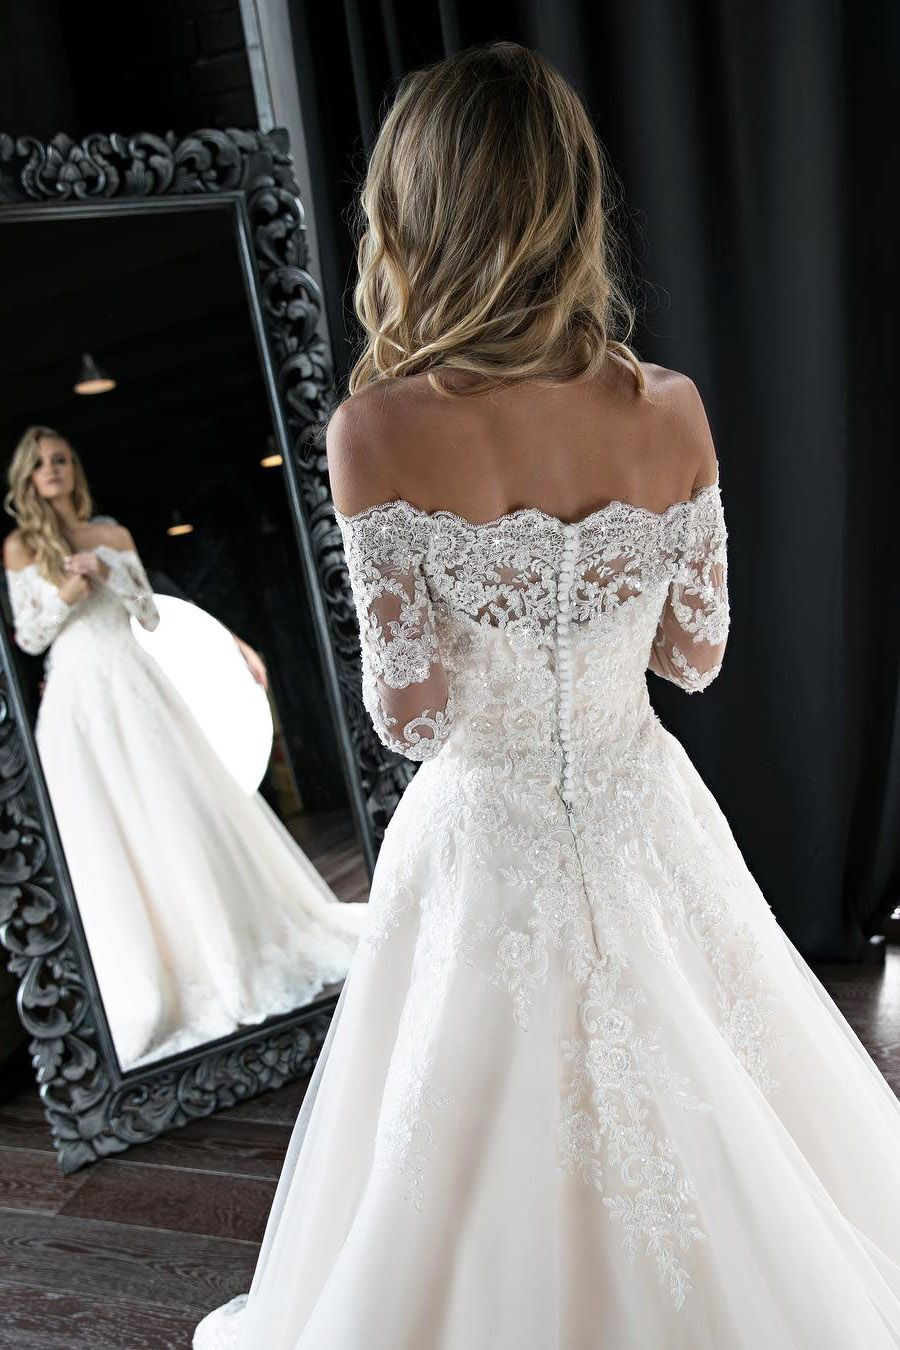 Pin By Grancip Lira On Wedding Dresses In 2020 Long Sleeve Wedding Dress Lace Lace Wedding Dress With Sleeves White Lace Wedding Dress,Tulle And Lace Wedding Dresses